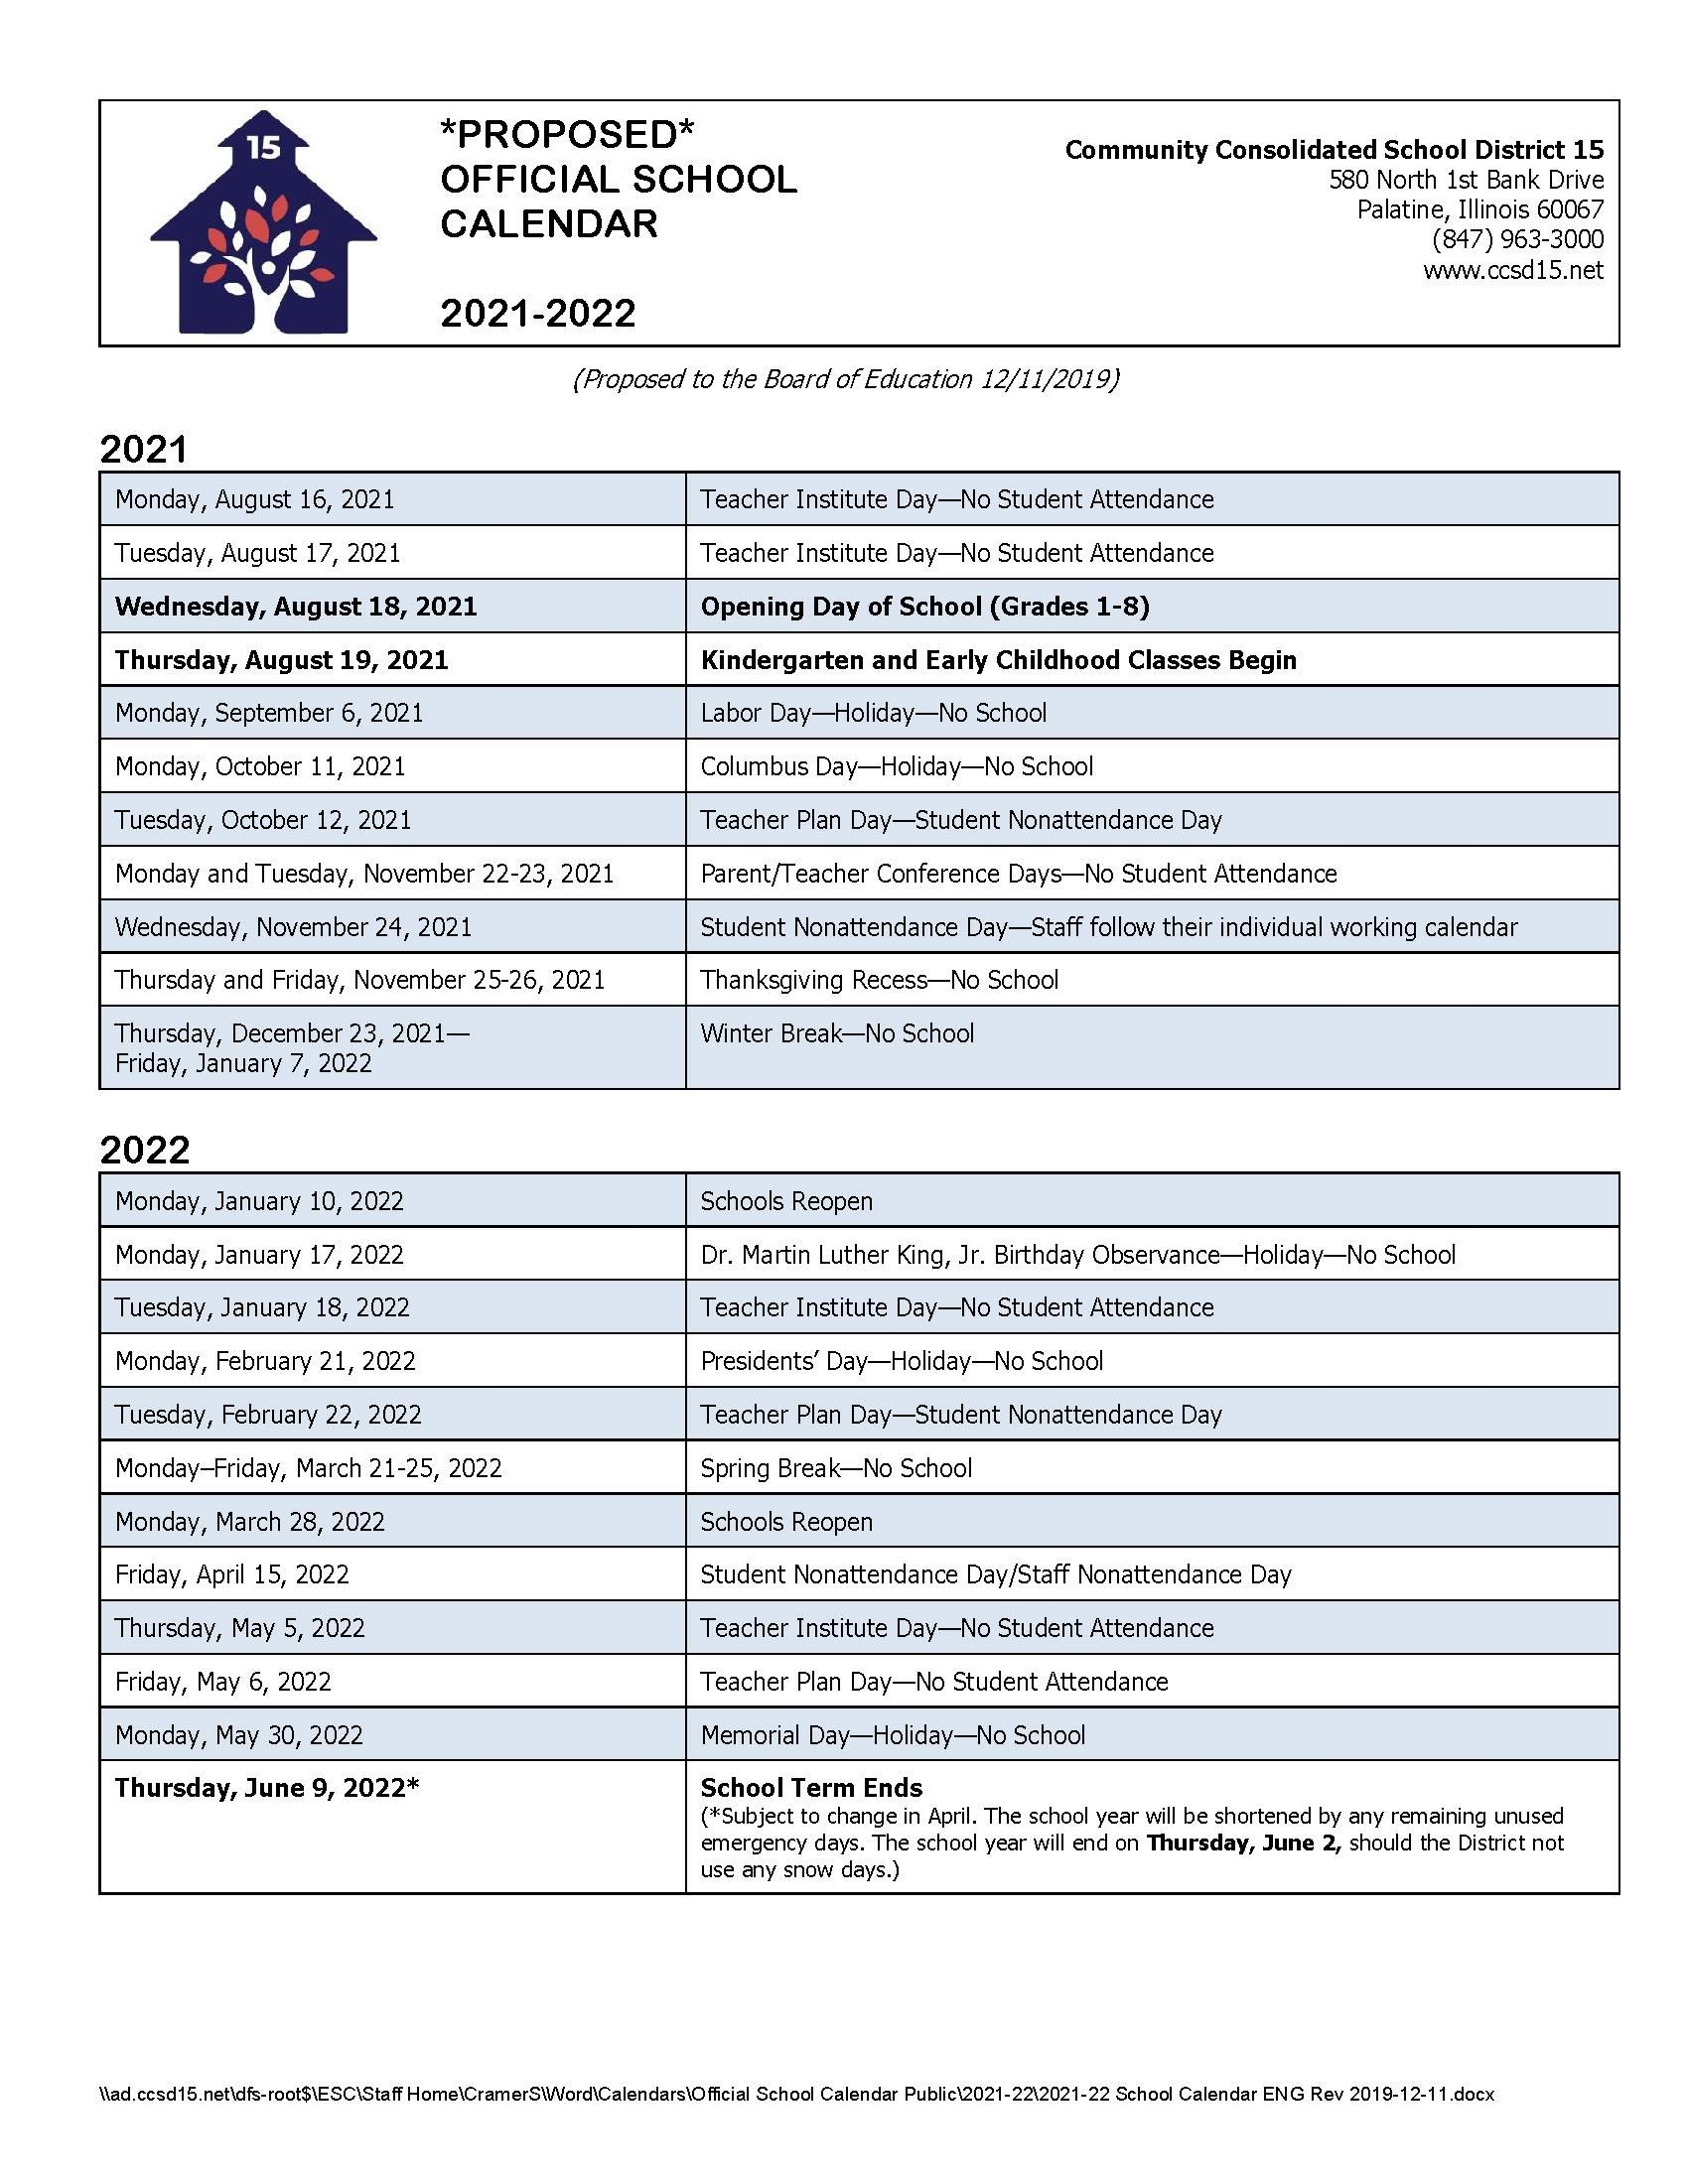 Calendar School Year 2021-22 Calendars / 2021 22 *Proposed* Official School Calendar